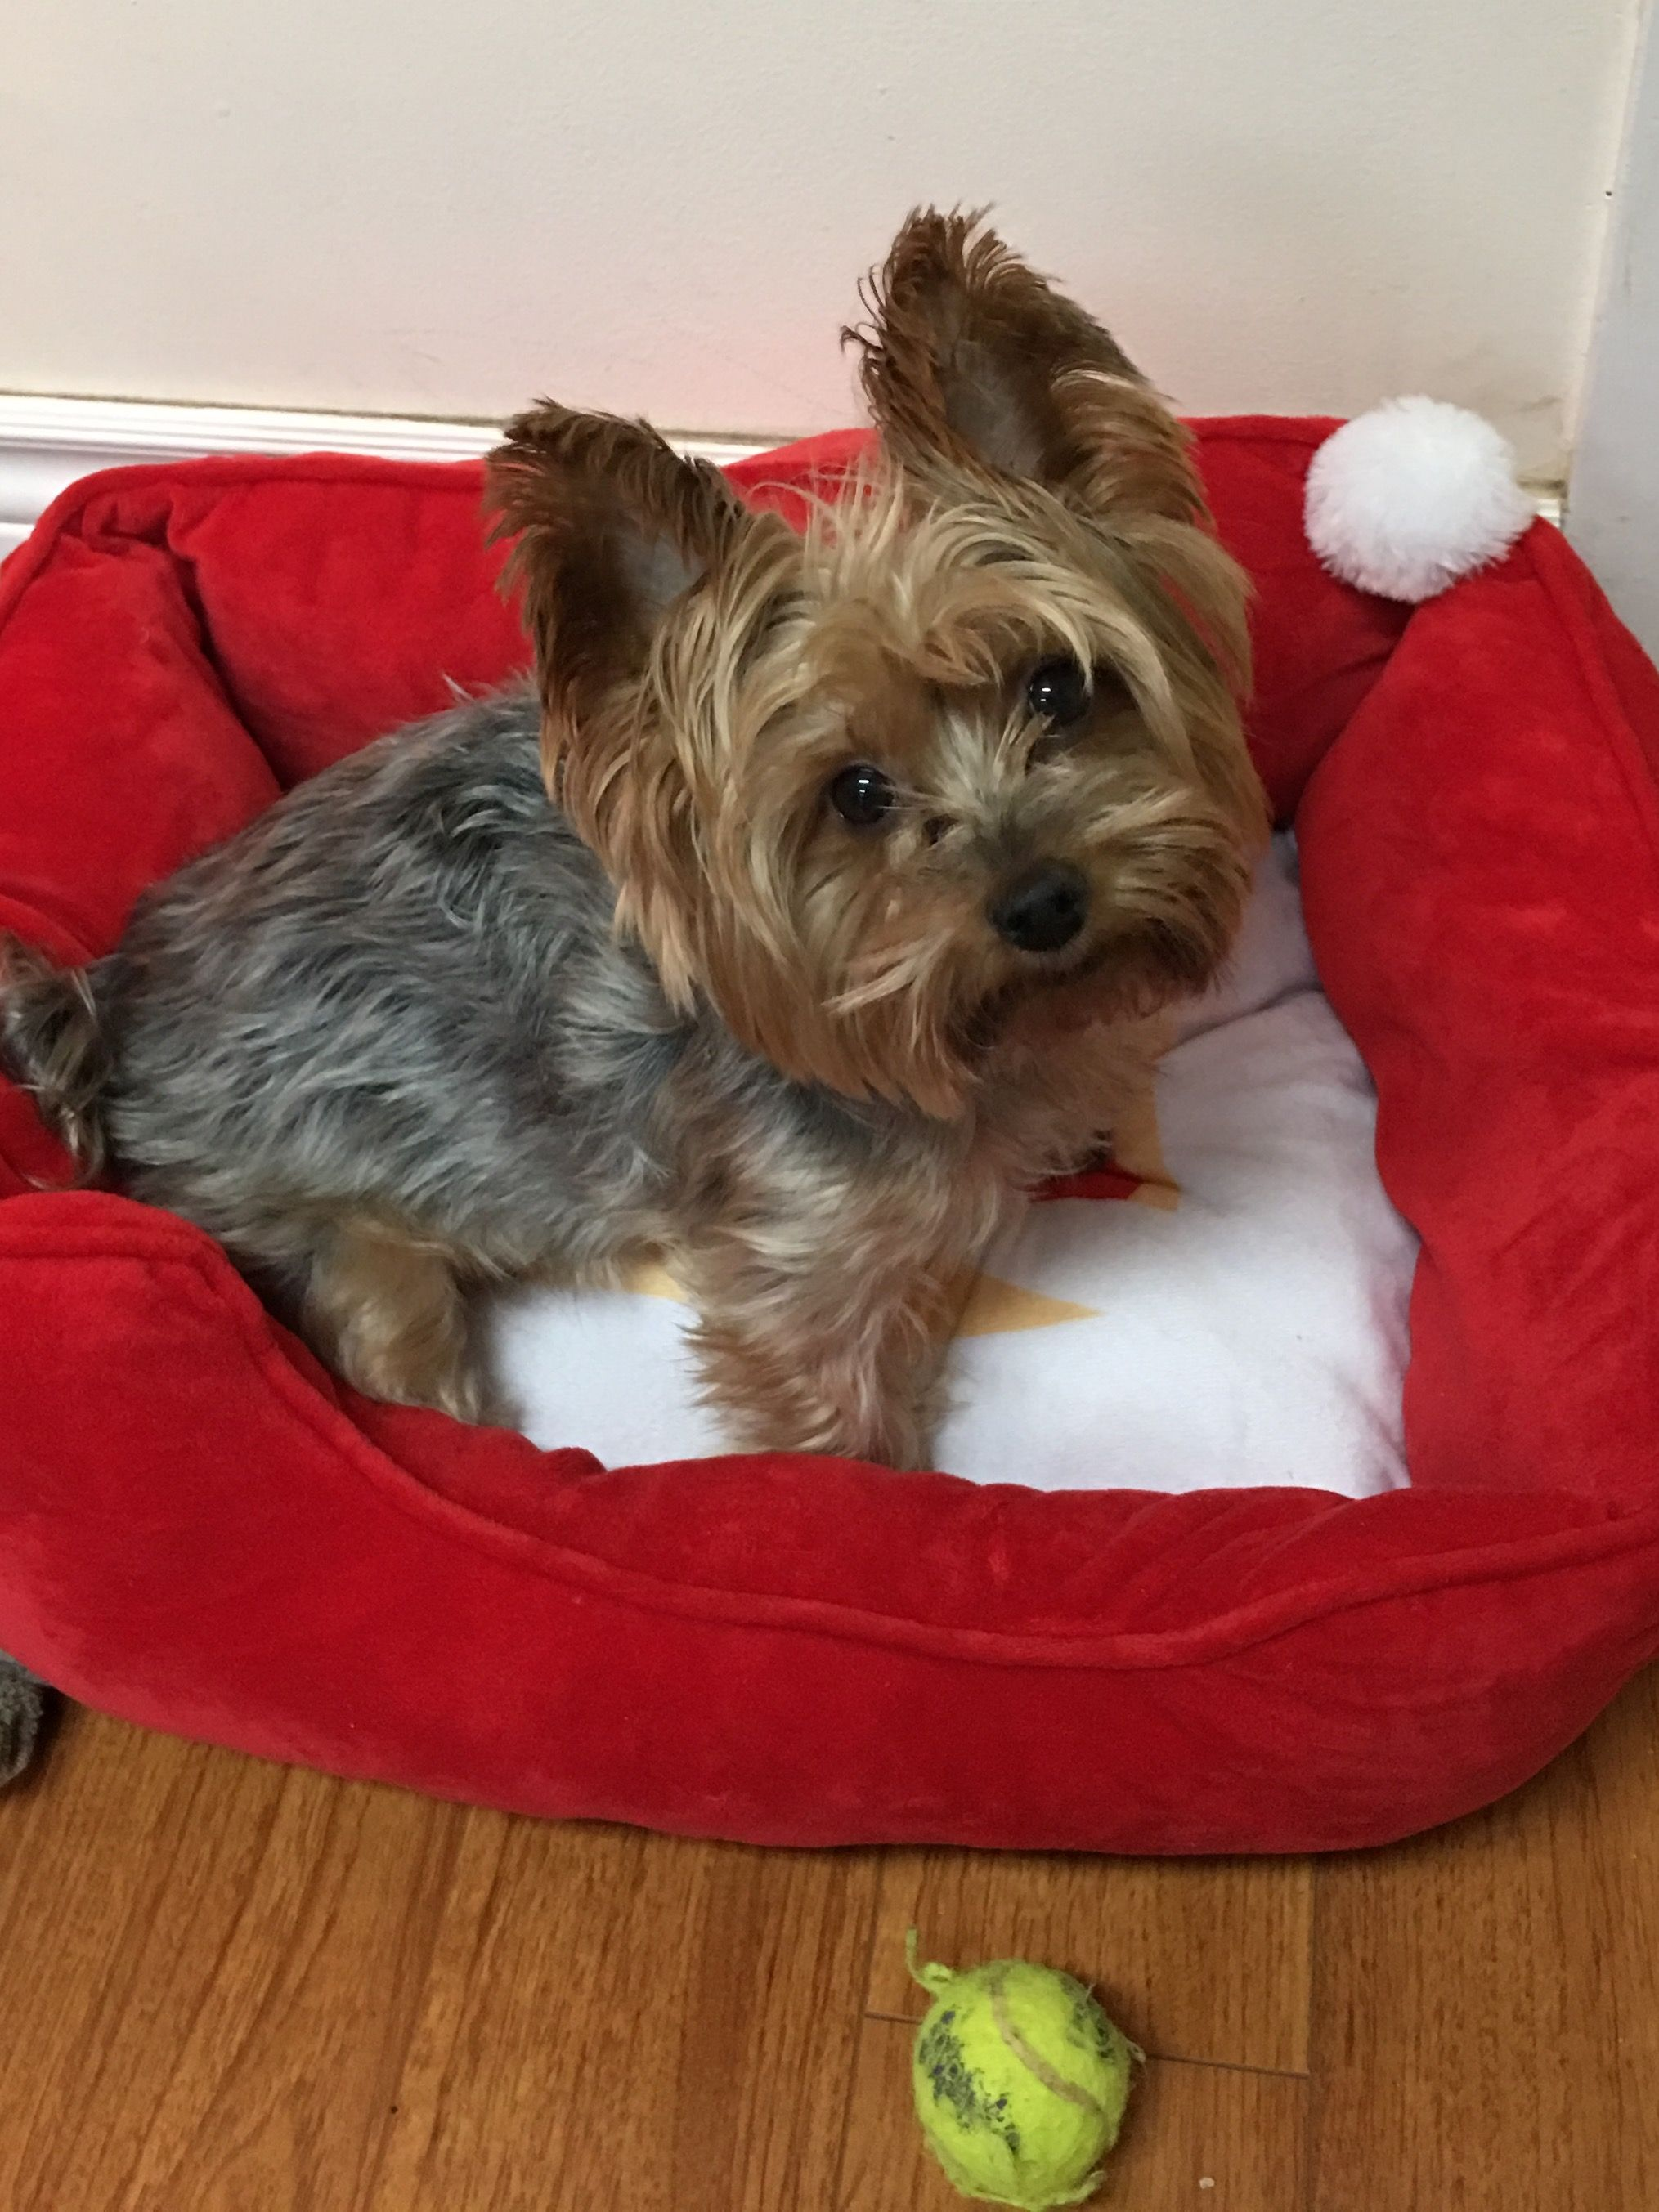 Yorkshire Terrier Energetic And Affectionate Yorkie Terrier Cute Fluffy Puppies Yorkshire Terrier